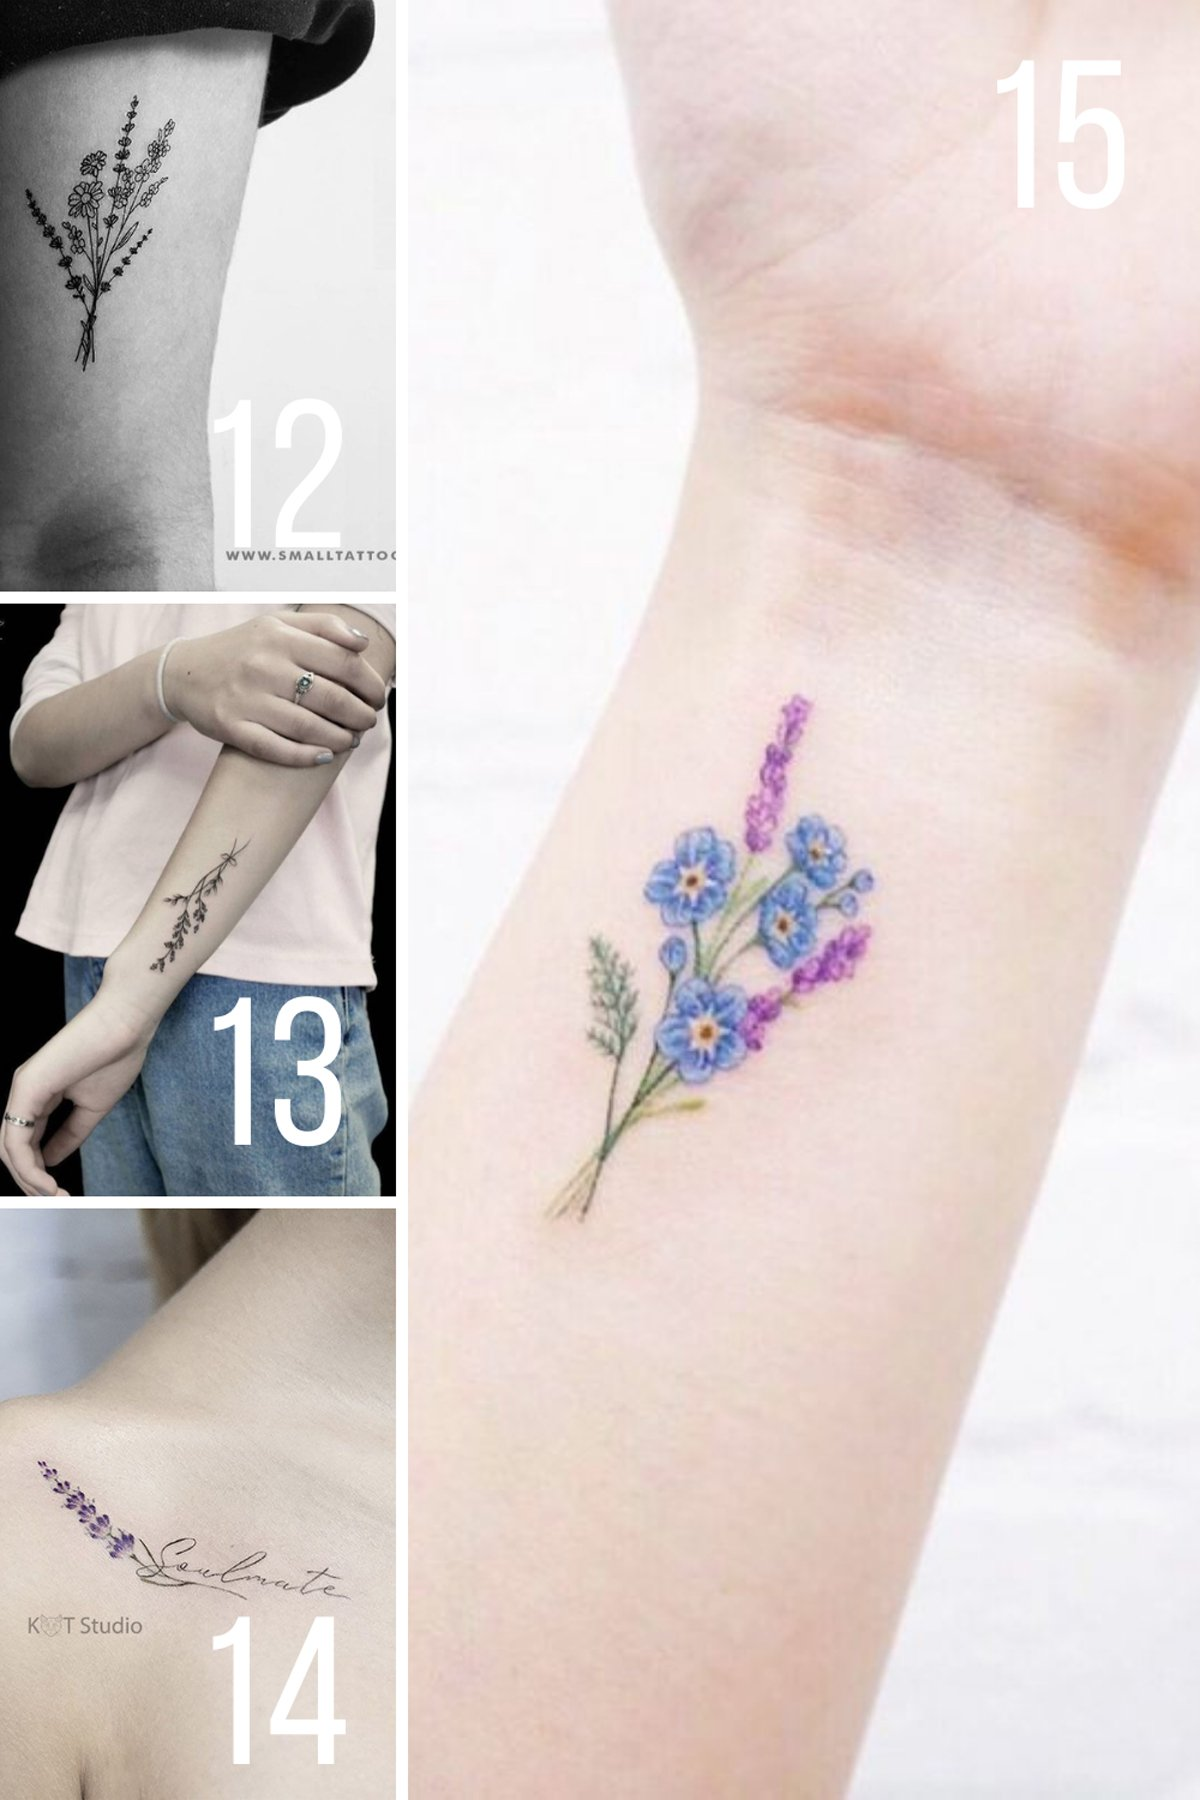 Small Tattoo Ideas for Birth Month